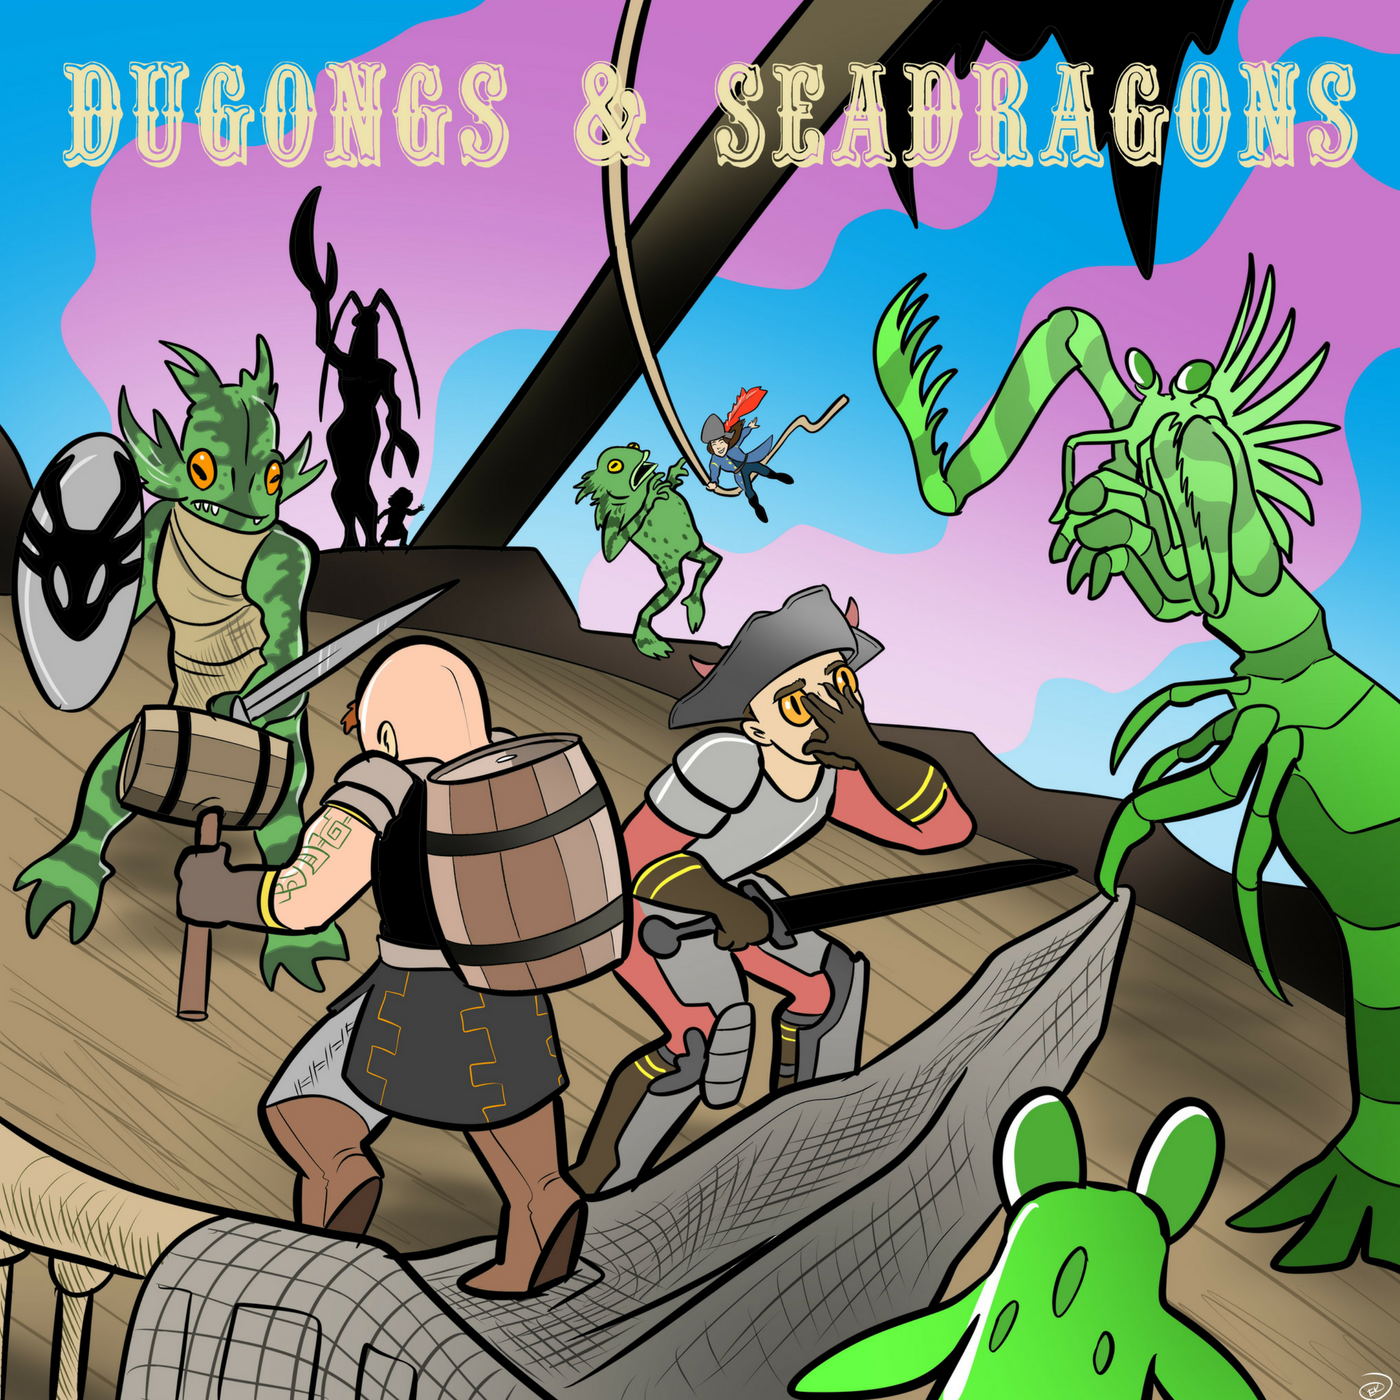 Dugongs And Seadragons